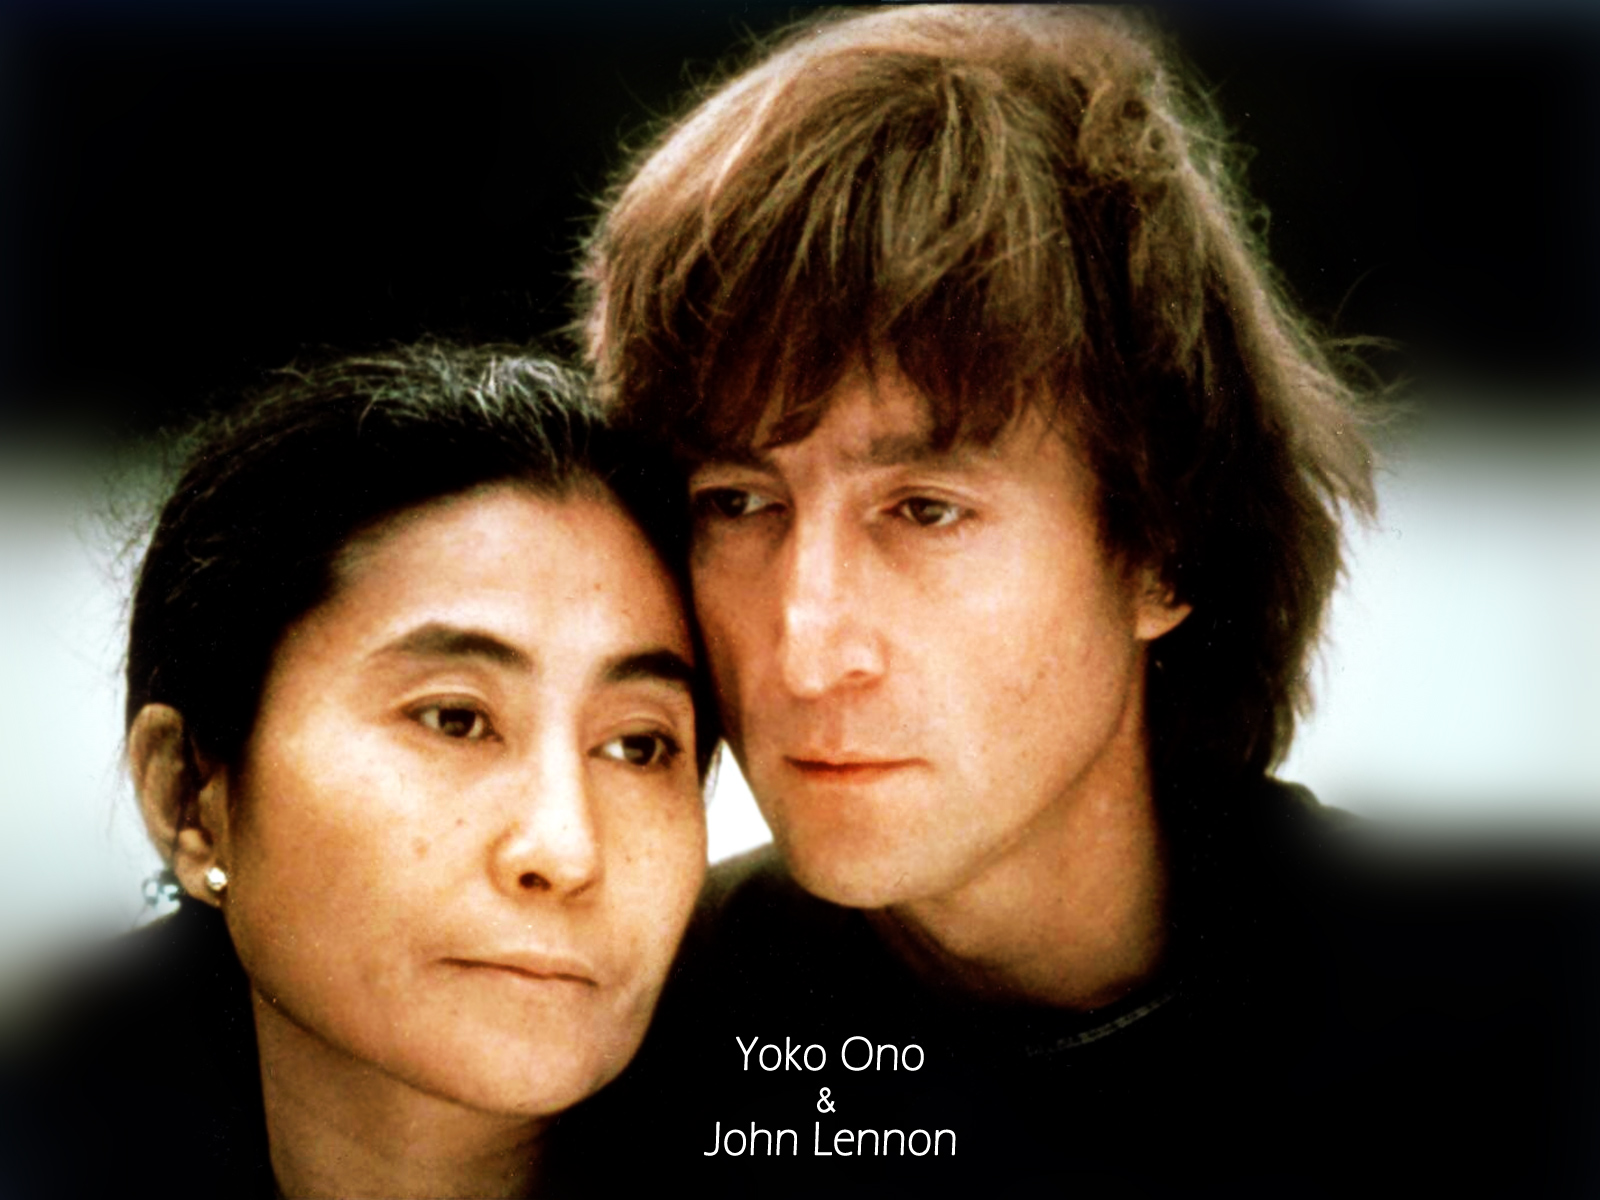 Free Yoko Ono And John Lennon, computer desktop wallpapers, pictures, images